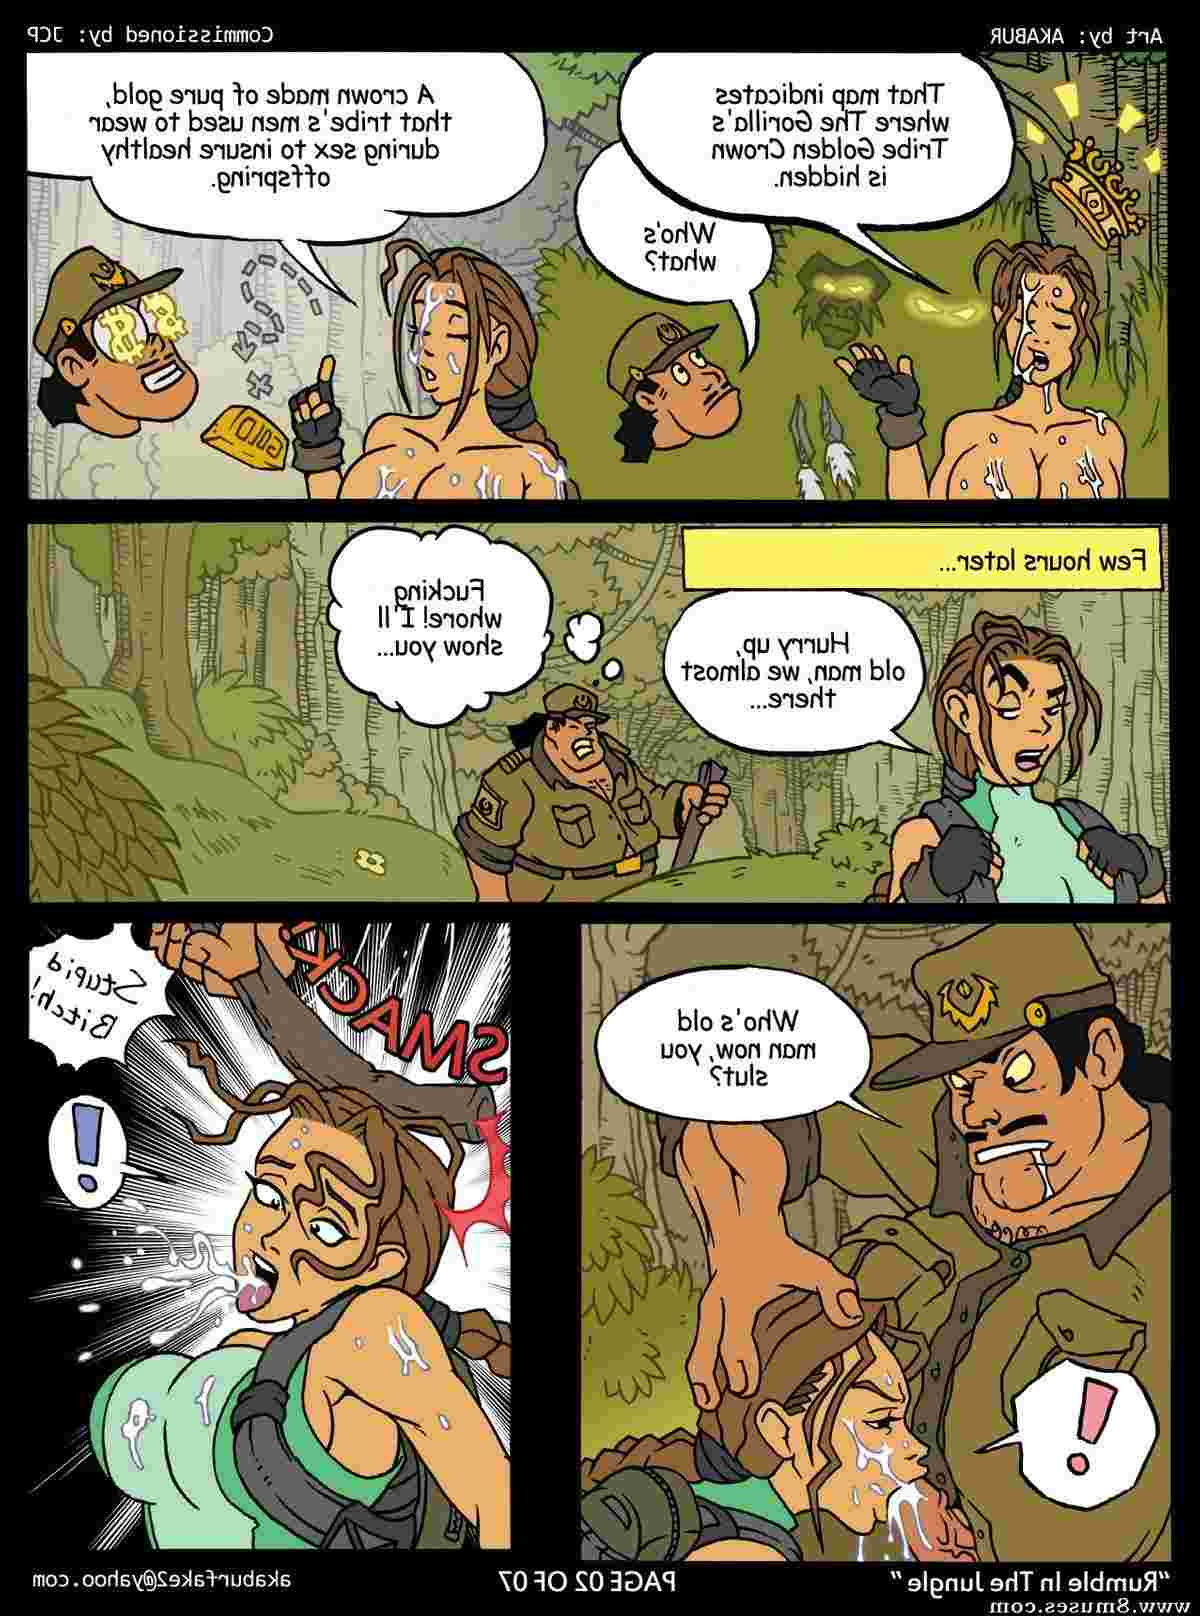 AKABUR-Comics/Rumble-in-the-Jungle Rumble_in_the_Jungle__8muses_-_Sex_and_Porn_Comics_2.jpg